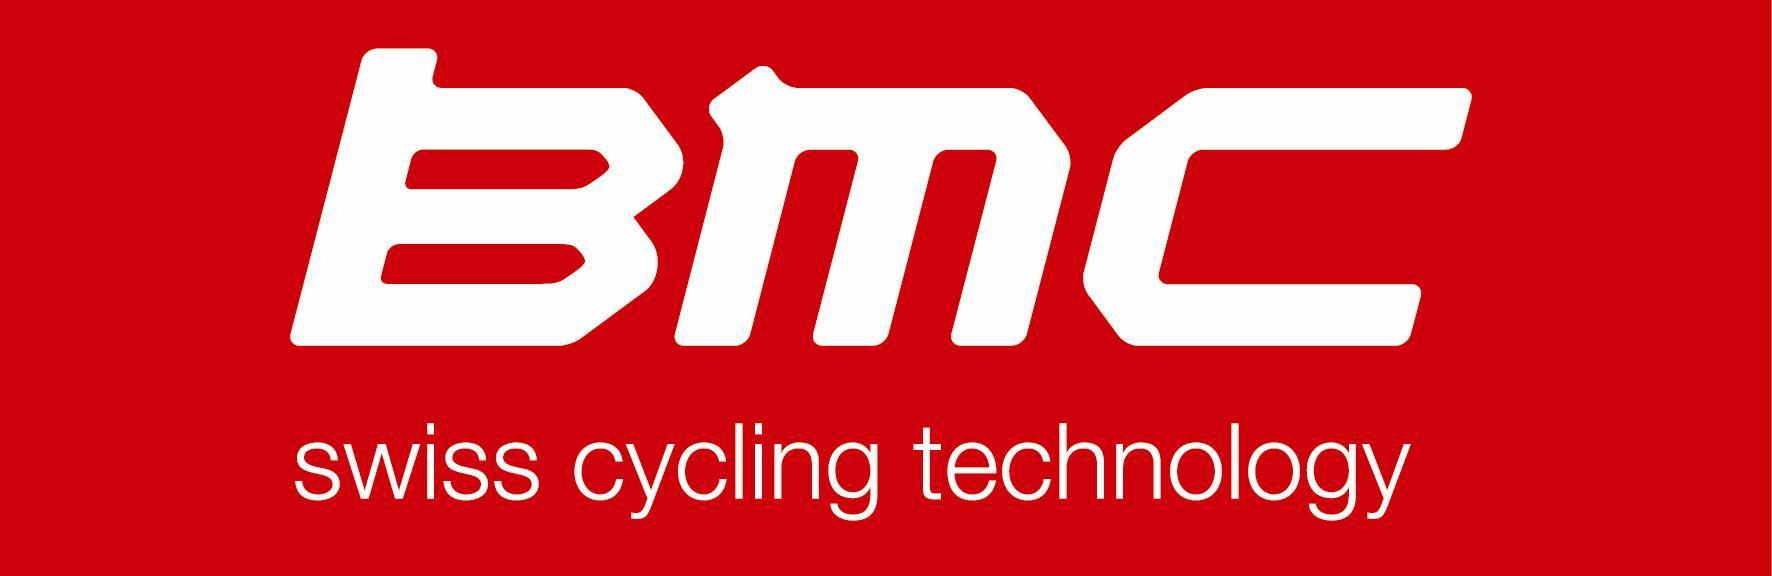 BMC_White_Solid_withClaim_onRed.jpg